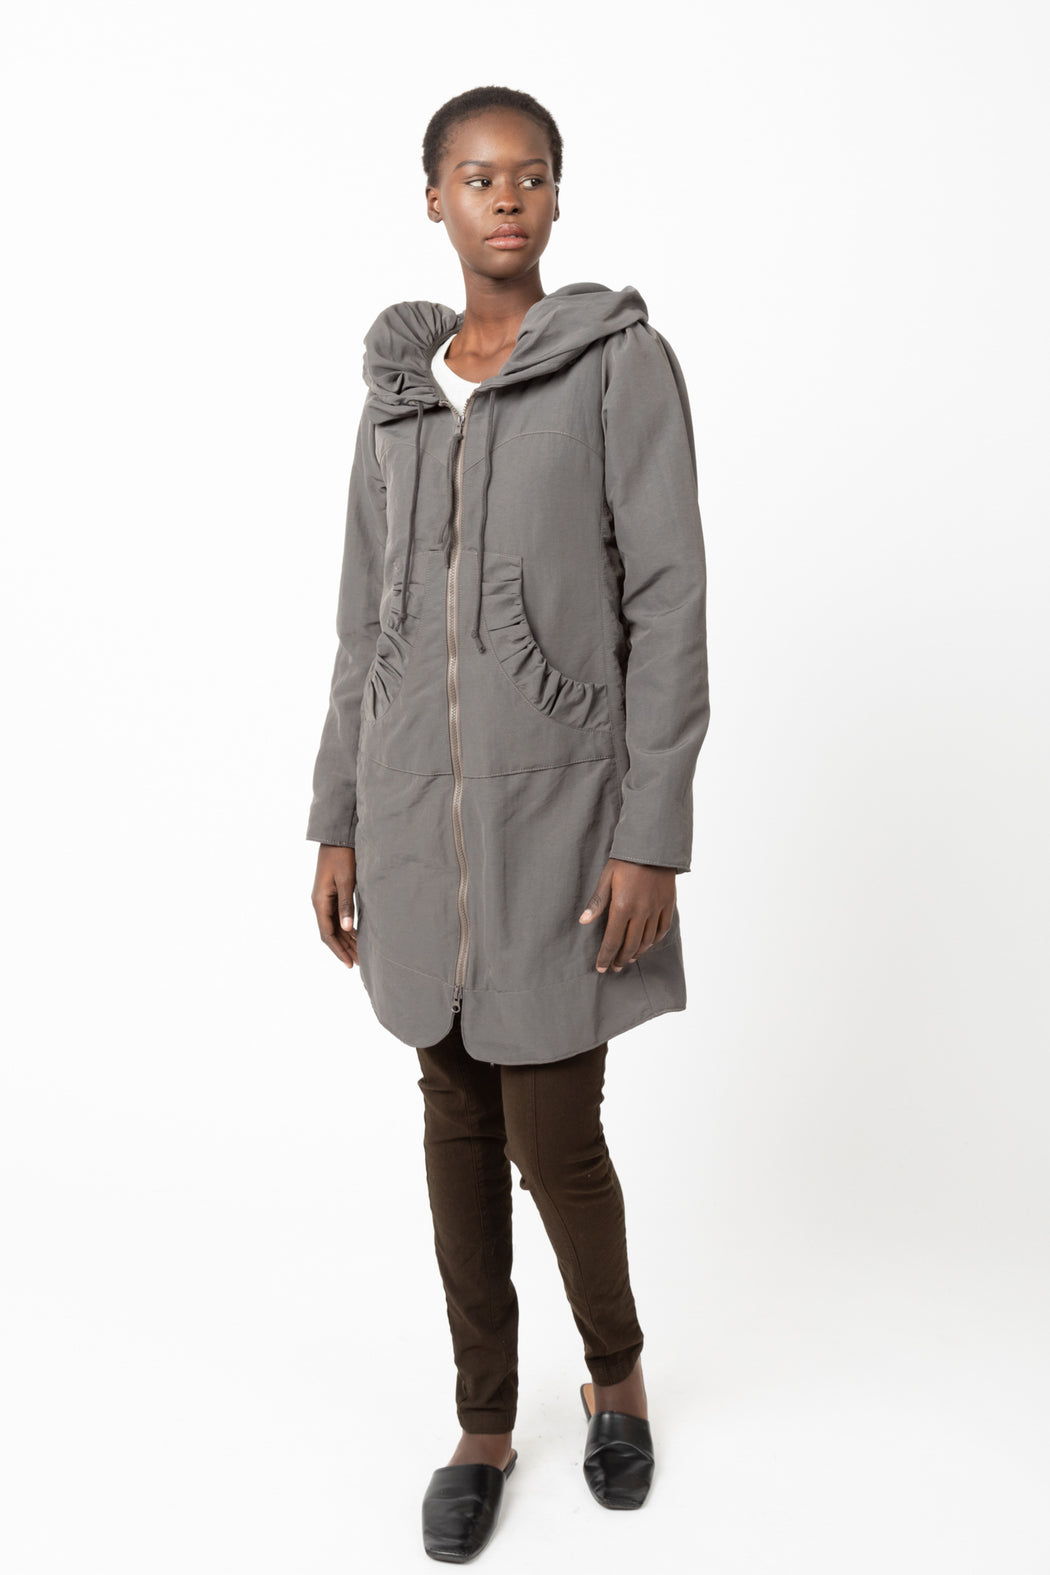 Our best-selling Long Cloak Hoodie reinvented in a Victorian style Raincoat with exaggerated hood and soft cotton lining.